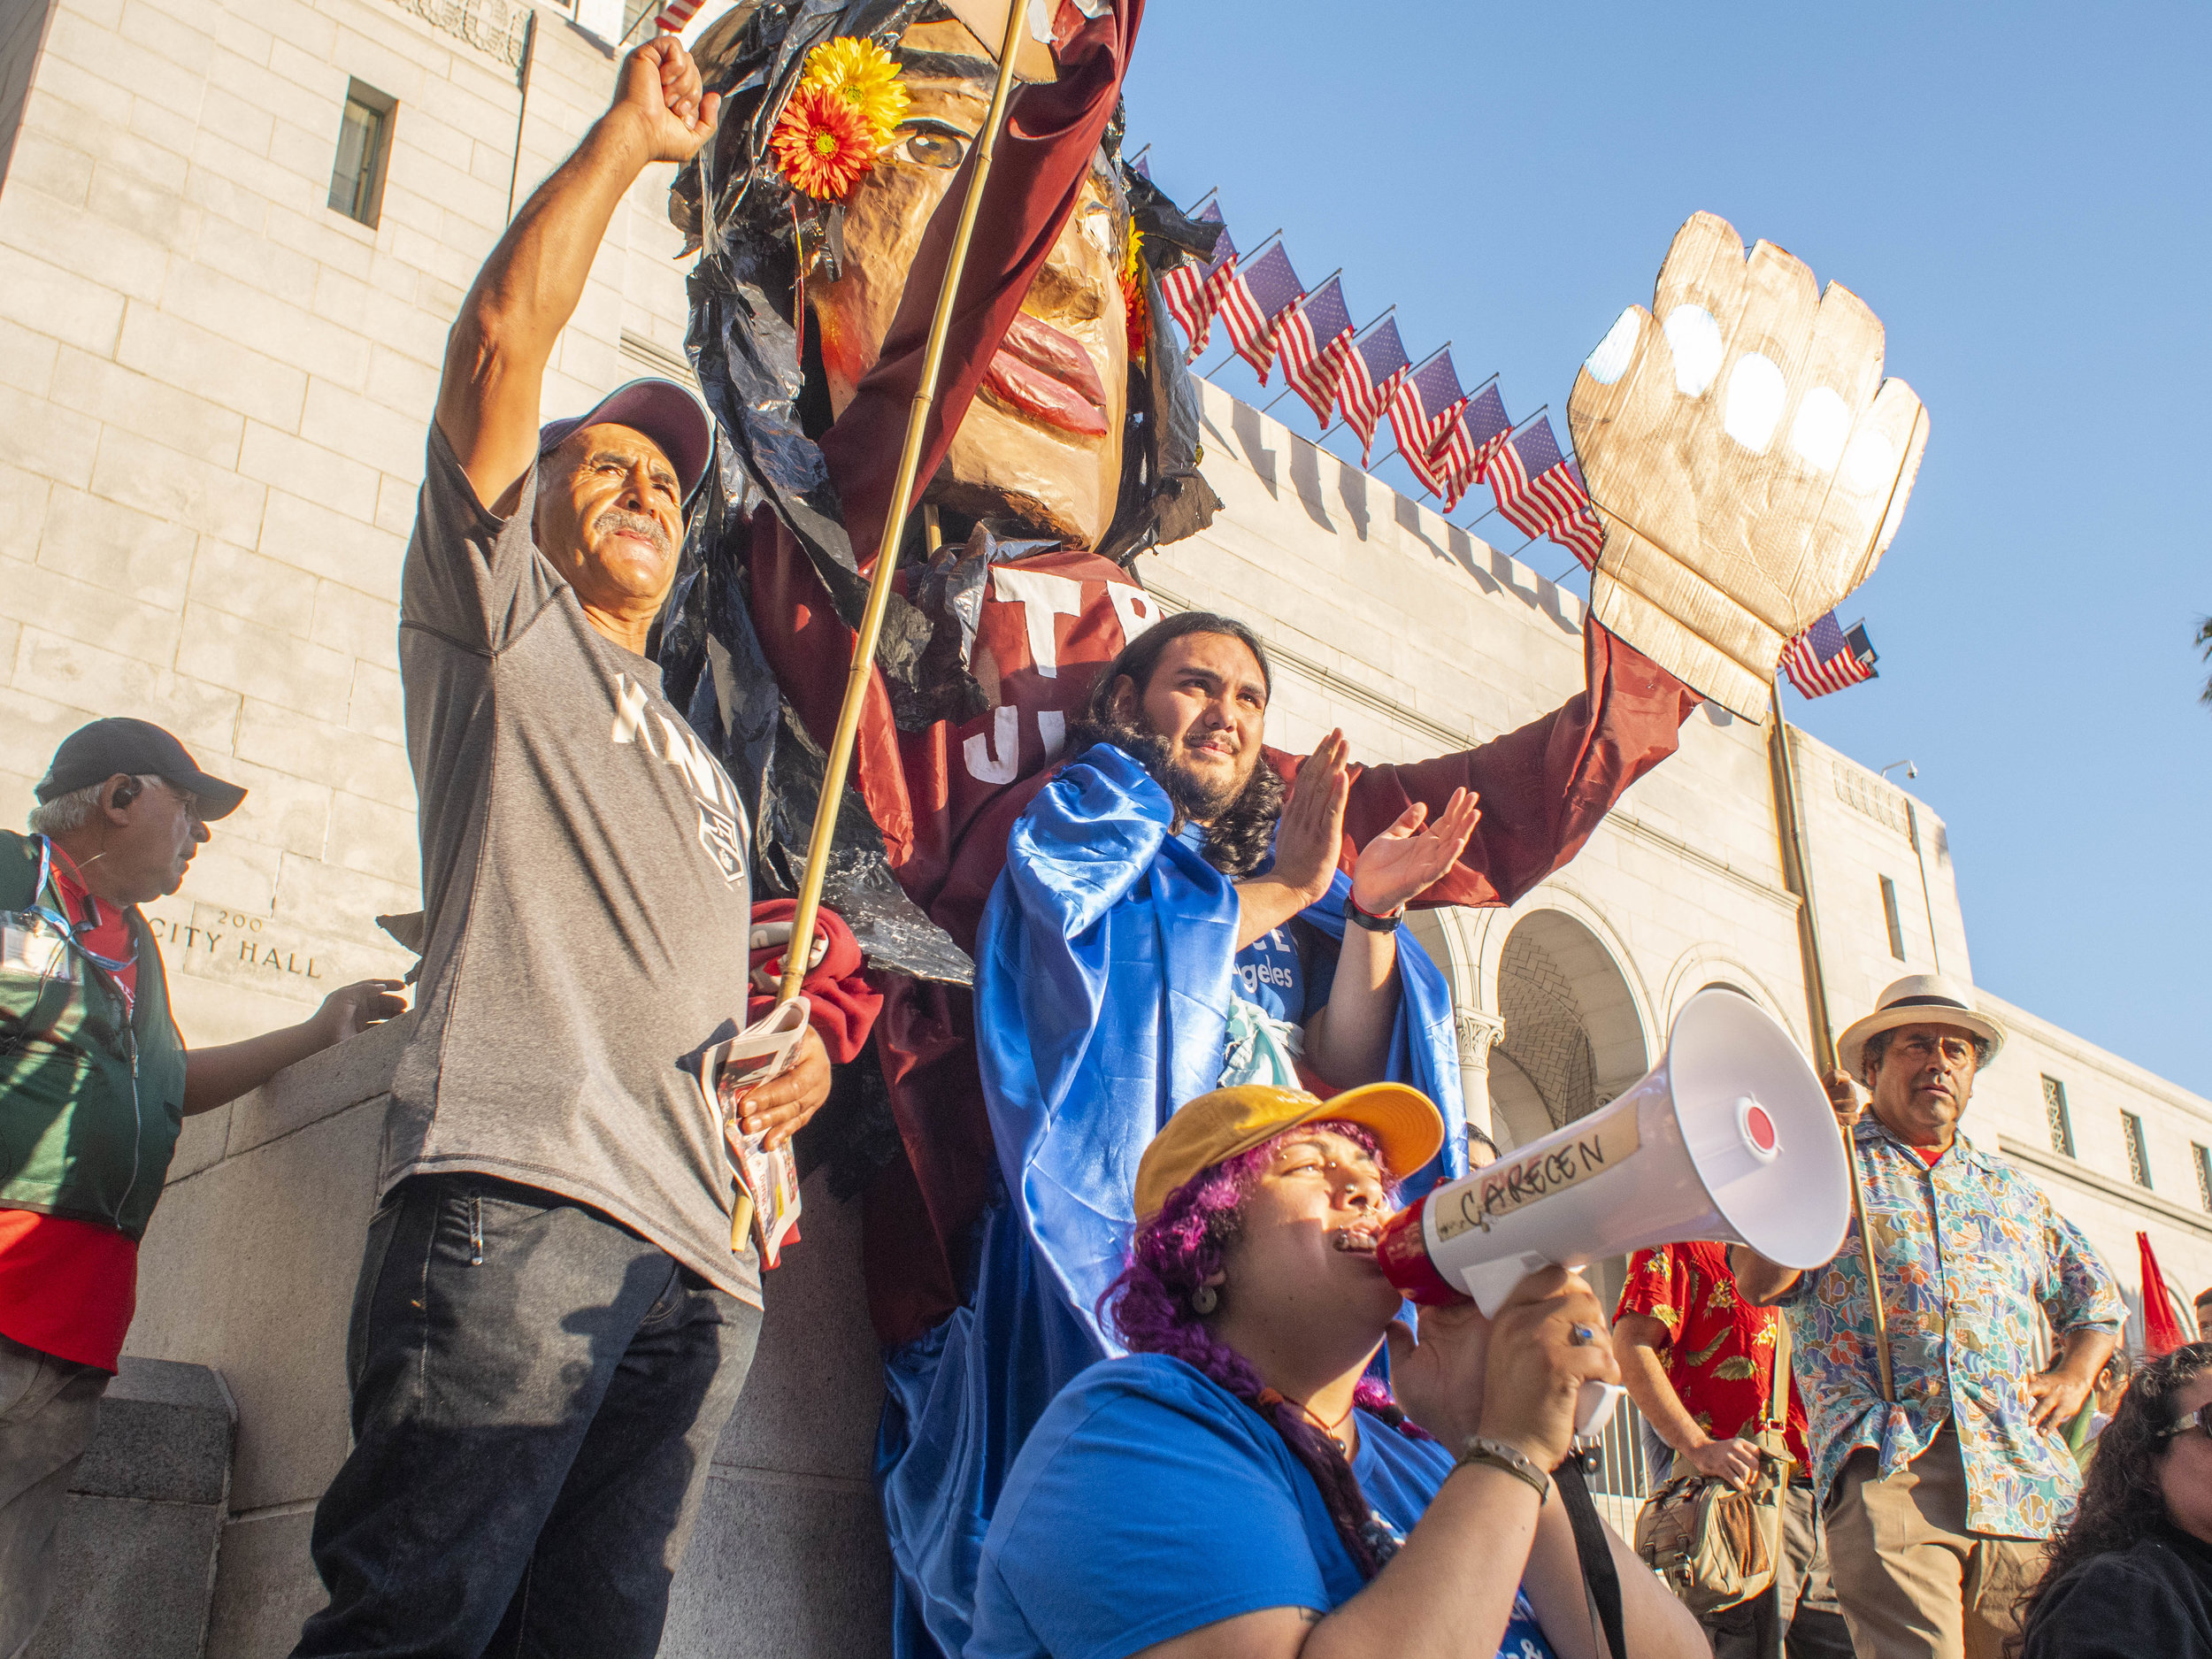 Marchers chant during the May Day March from MacArthur Park to City Hall on Wednesday, May 1, 2019, Los Angeles California. (Victor Noerdlinger/Corsair)